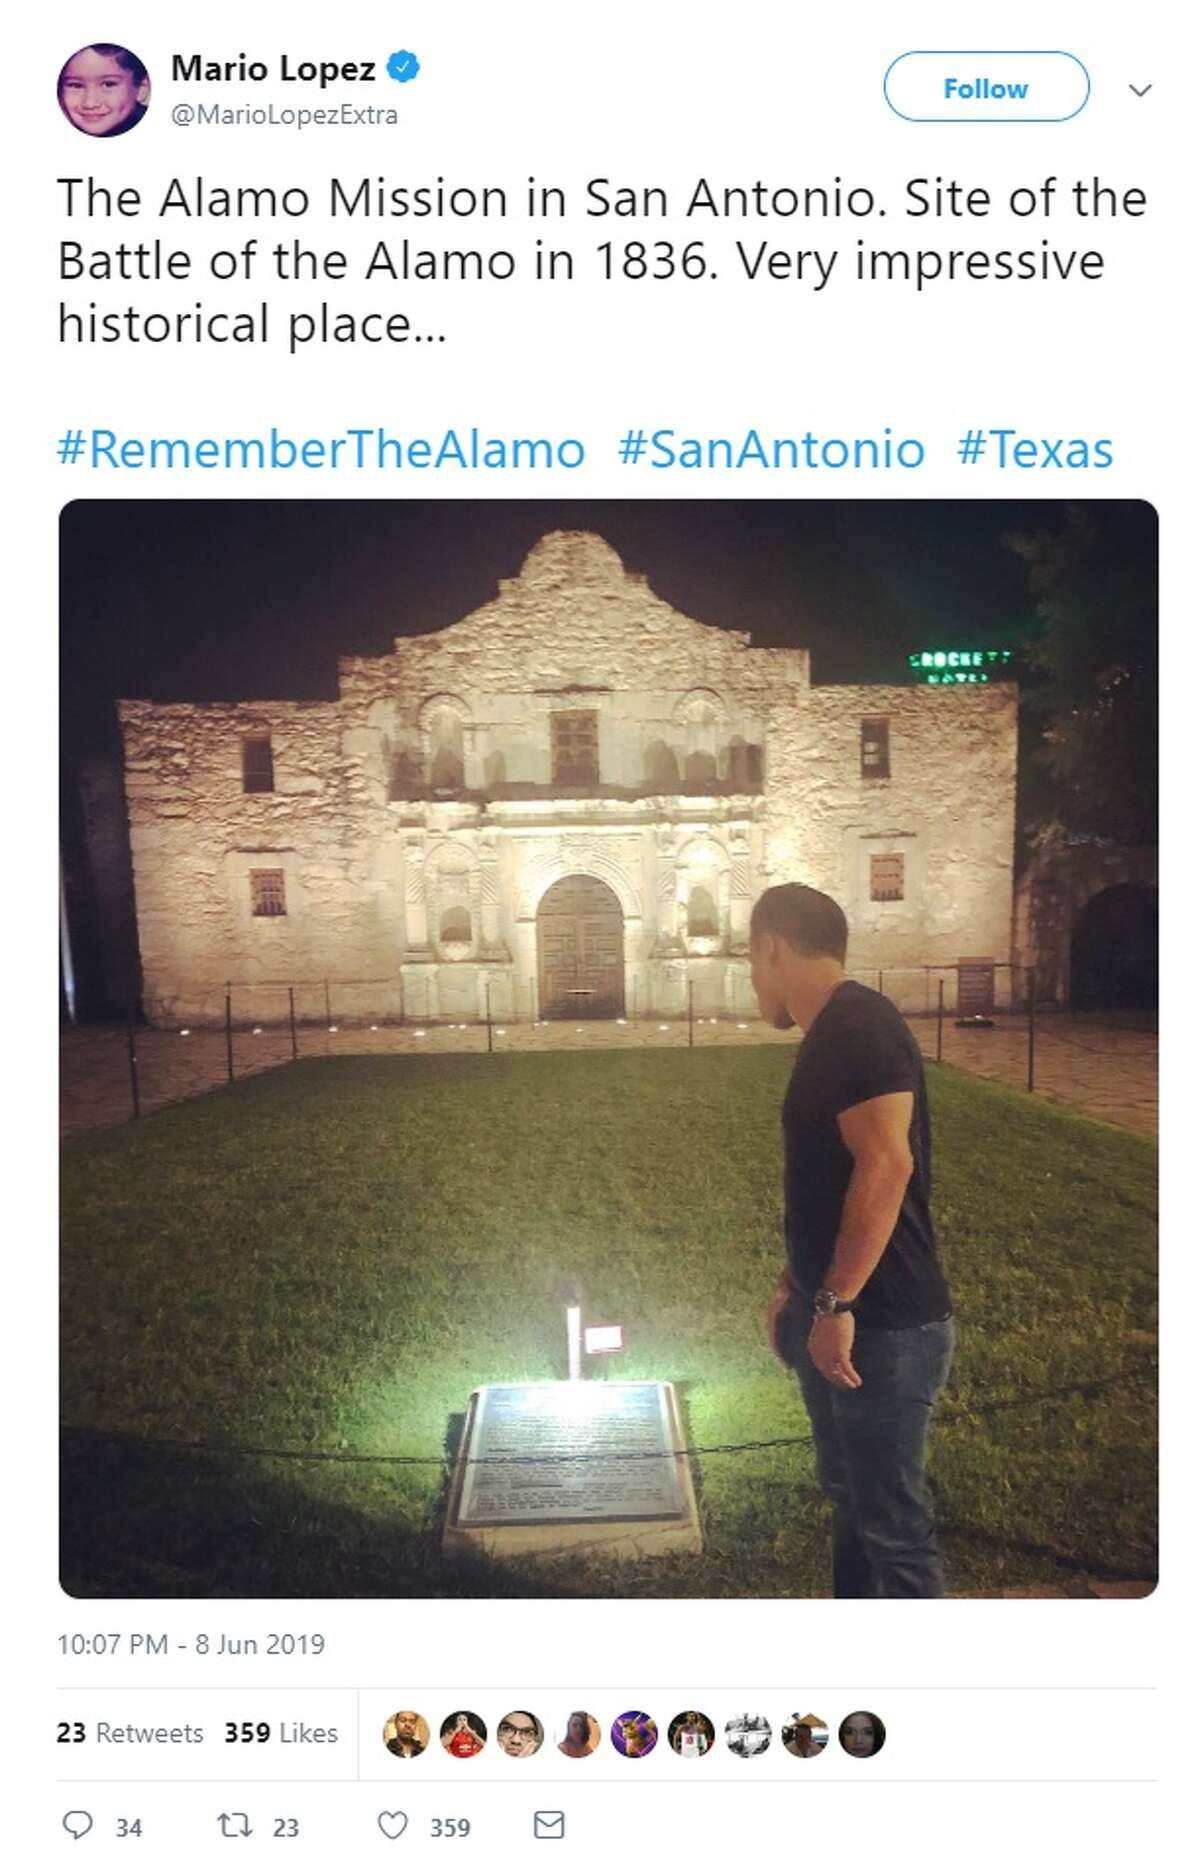 Mario Lopez posted about his visit at the Alamo on Saturday on Twitter.